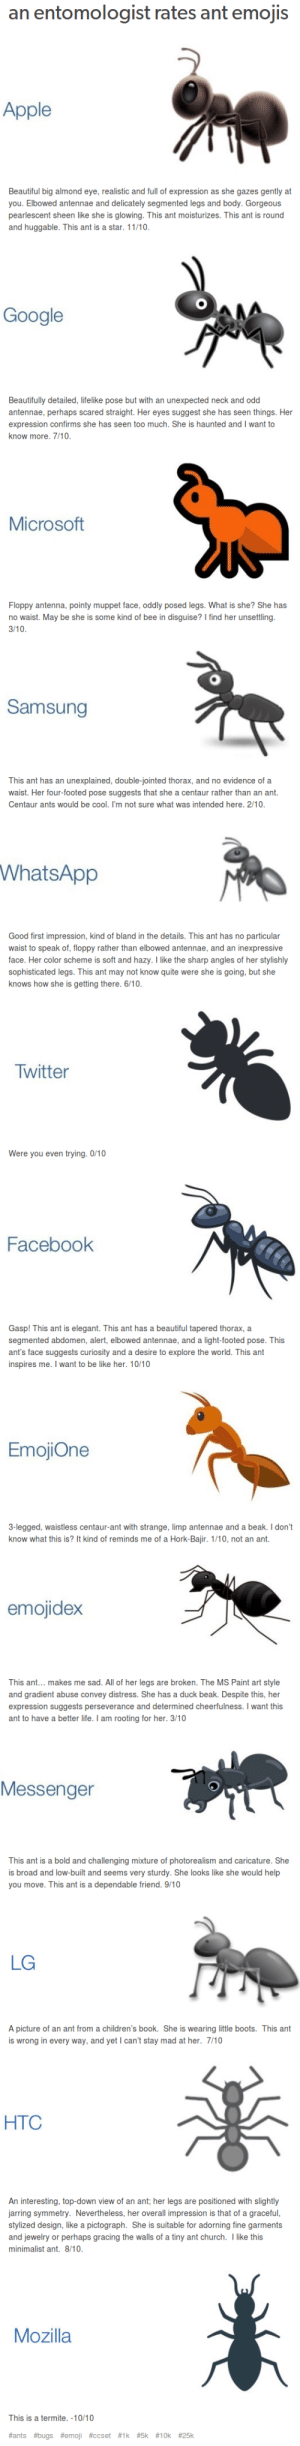 Apple, Be Like, and Beautiful: an entomologist rates ant emojis  Apple  Beautiful big almond eye, realistic and full of expression as she gazes gently at  you. Elbowed antennae and delicately segmented legs and body. Gorgeous  pearlescent sheen like she is glowing. This ant moisturizes. This ant is round  and huggable. This ant is a star. 11/10.  Google  Beautifully detailed, lifelike pose but with an unexpected neck and odd  antennae, perhaps scared straight. Her eyes suggest she has seen things. Her  expression confirms she has seen too much. She is haunted and I want to  know more. 7/10.  Microsoft  Floppy antenna, pointy muppet face, oddly posed legs. What is she? She has  dda  no waist. May be she is some kind of bee in disguise? I find her unsettling.  3/10.  Samsung  This ant has an unexplained, double-jointed thorax, and no evidence of a  waist. Her four-footed pose suggests that she a centaur rather than an ant.  Centaur ants would be cool. I'm not sure what was intended here. 2/10.  WhatsApp  Good first impression, kind of bland in the details. This ant has no particu lar  waist to speak of, floppy rather than elbowed antennae, and an inexpressive  face. Her color scheme is soft and hazy. I like the sharp angles of her stylishly  sophisticated legs. This ant may not know quite were she is going, but she  knows how she is getting there. 6/10.  Twitter  Were you even trying. O/10  Facebook  Gasp! This ant is elegant. This ant has a beautiful tapered thorax, a  segmented abdomen, alert, elbowed antennae, and a light-footed pose. This  ant's face suggests curiosity and a desire to explore the world. This ant  inspires me. I want to be like her. 10/10  EmojiOne  - legged, waistless centaur-ant with strange, limp antennae and a beak. I don't  know what this is? It kind of reminds me of a Hork-Bajir. 1/10, not an ant.  emojidex  This ant... makes me sad. All of her legs are broken. The MS Paint art style  and gradient abuse convey distress. She has a duck beak. D